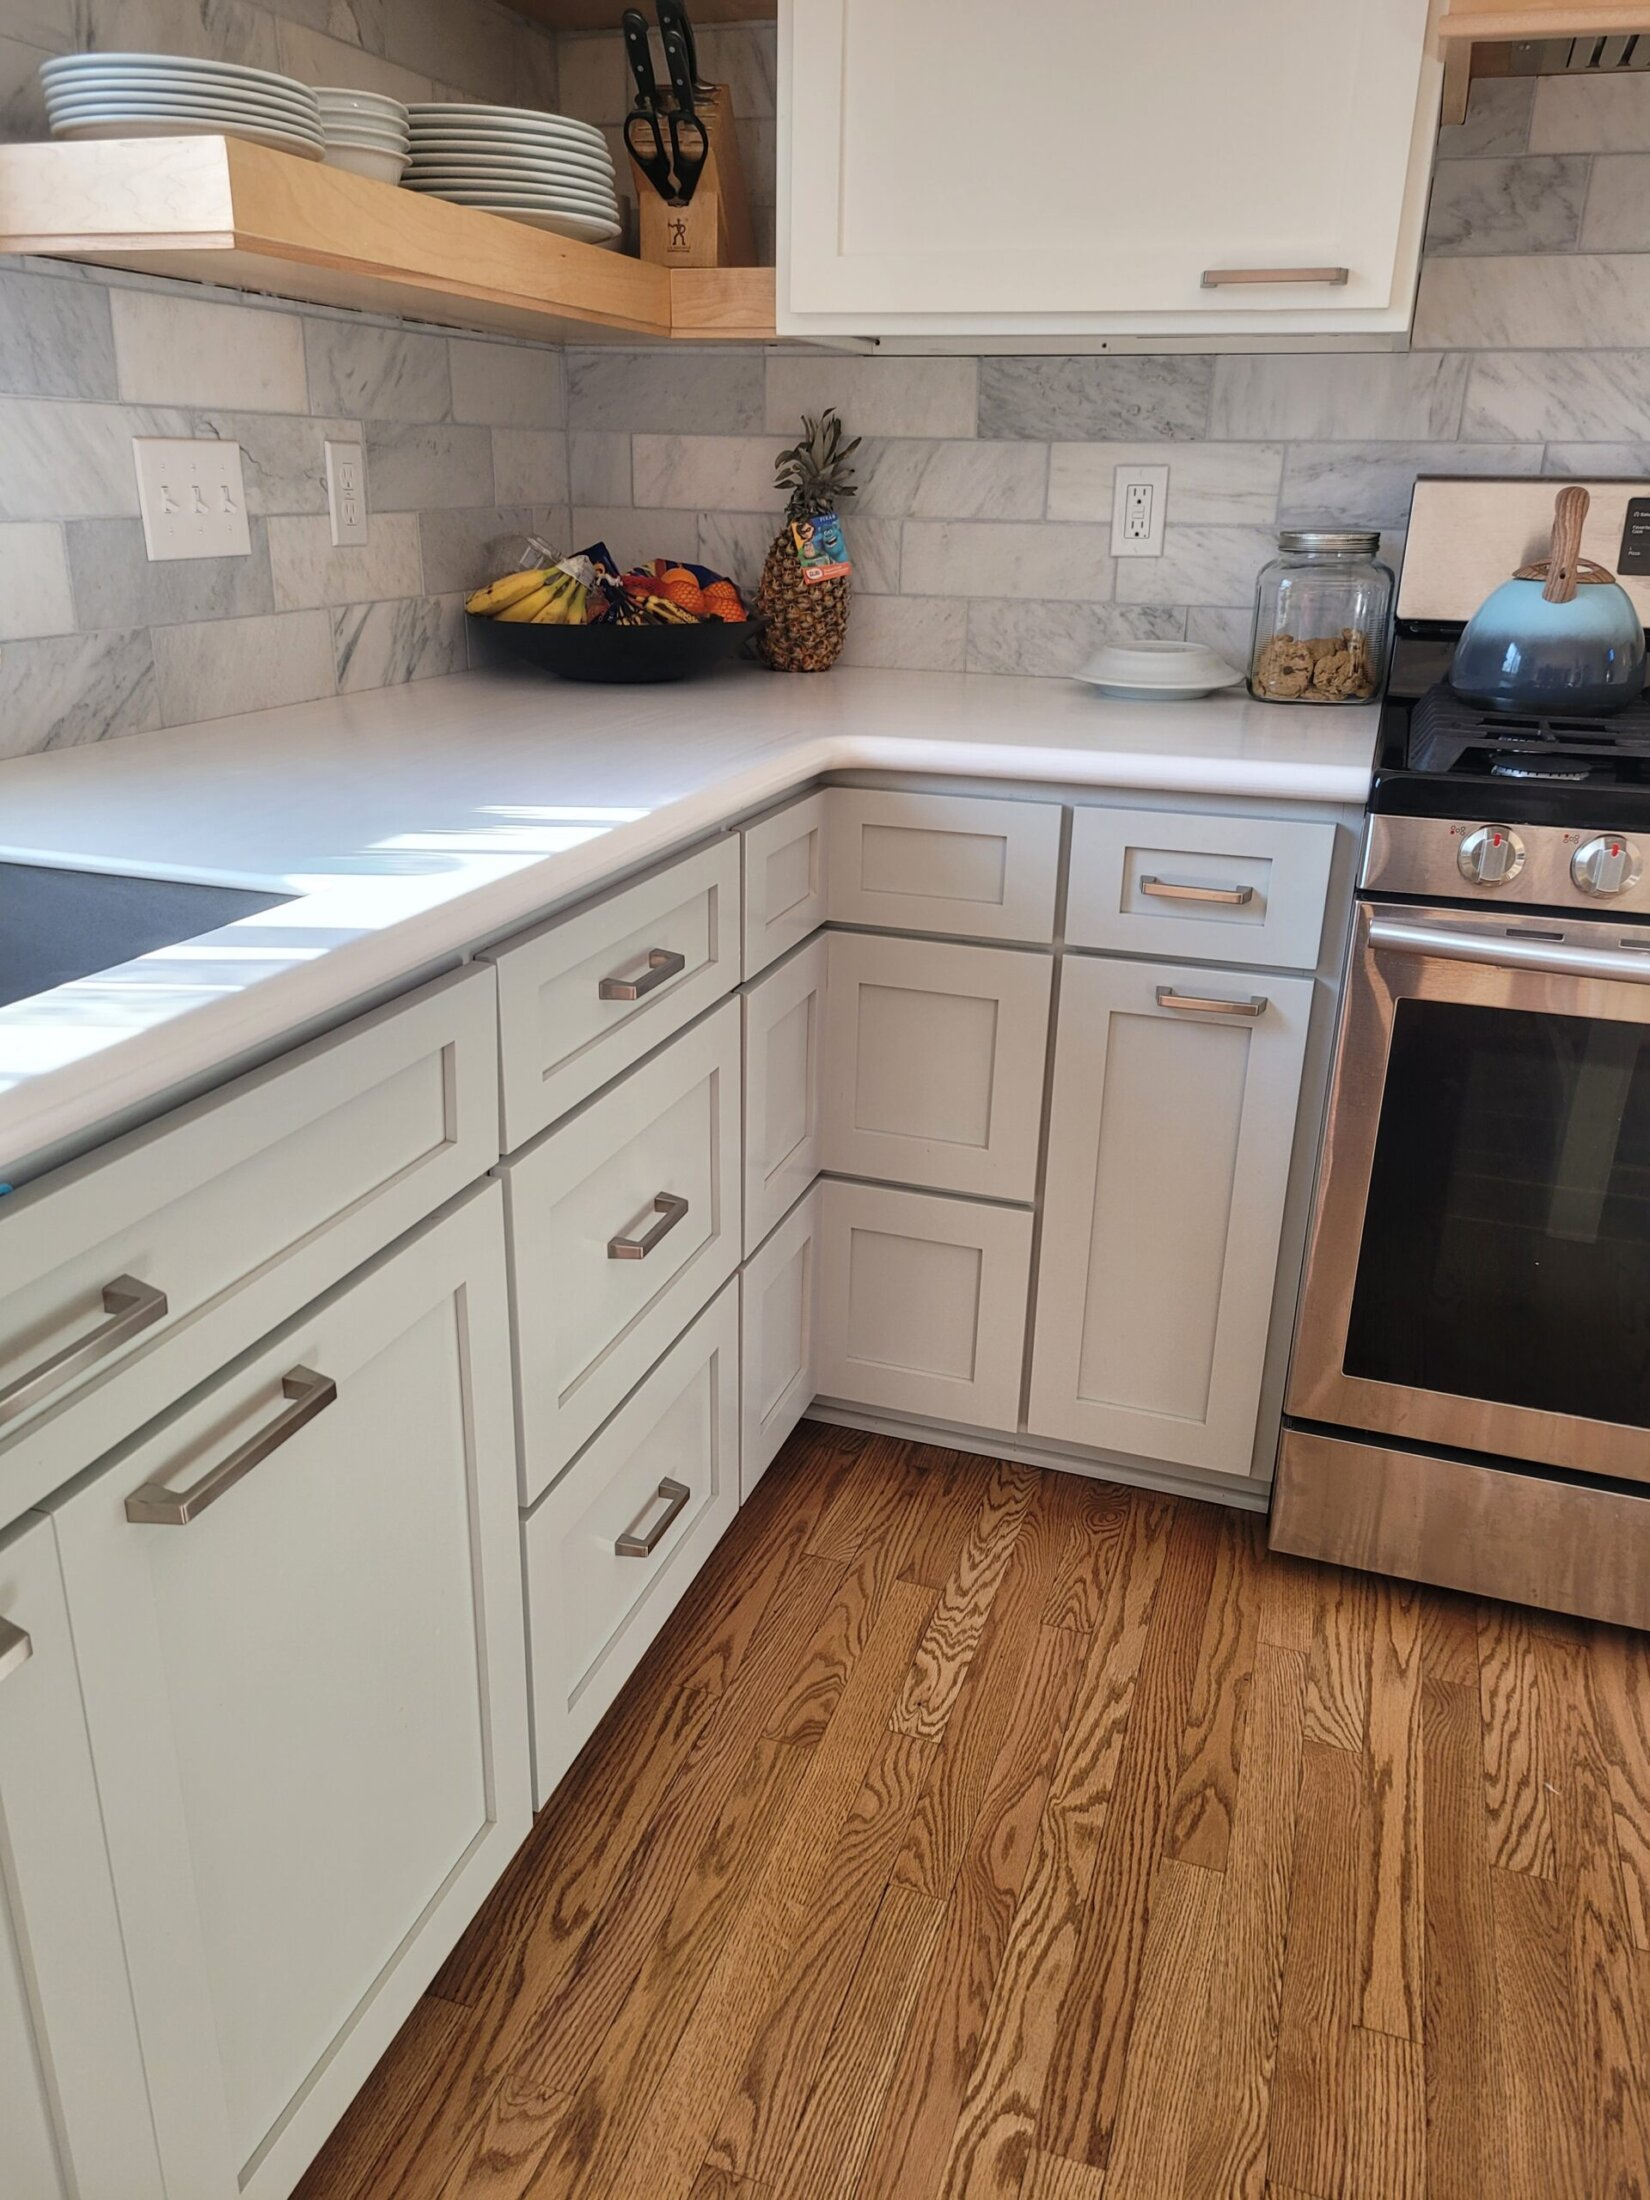 Custom Maple Cabinets with Pull out Corner Drawers